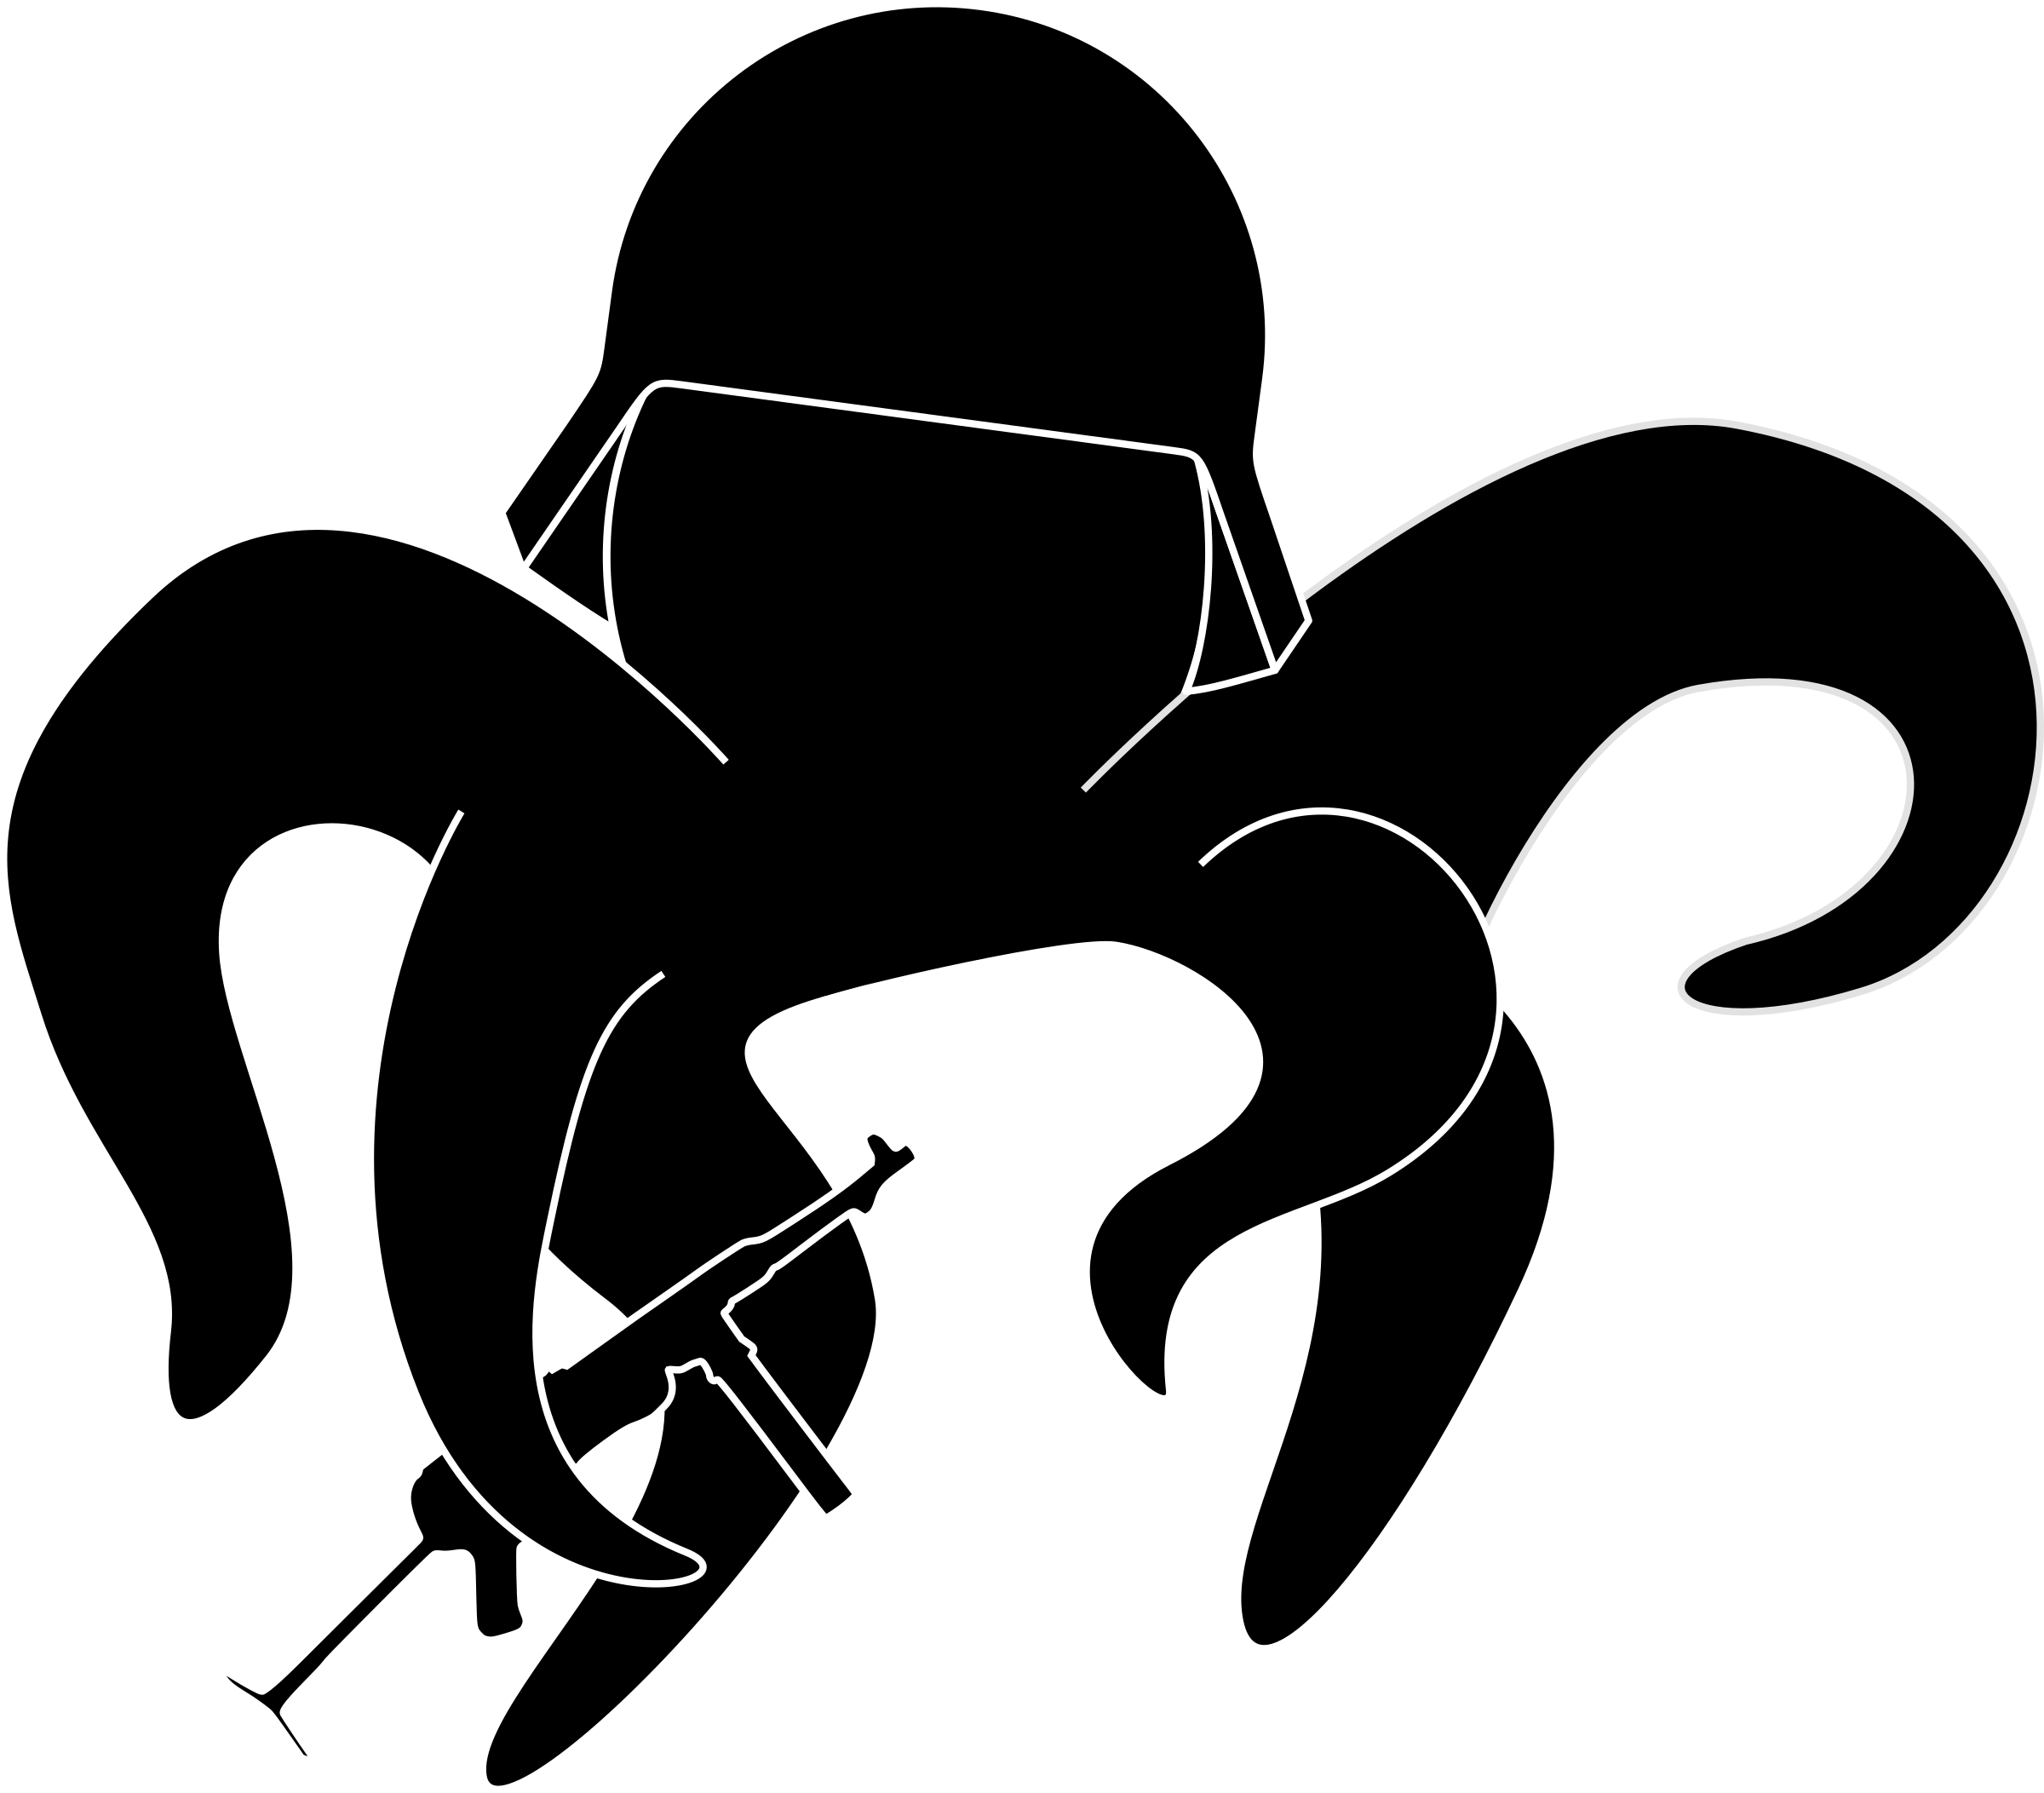 Octopus stormtrooper big image. Soldiers clipart stencil